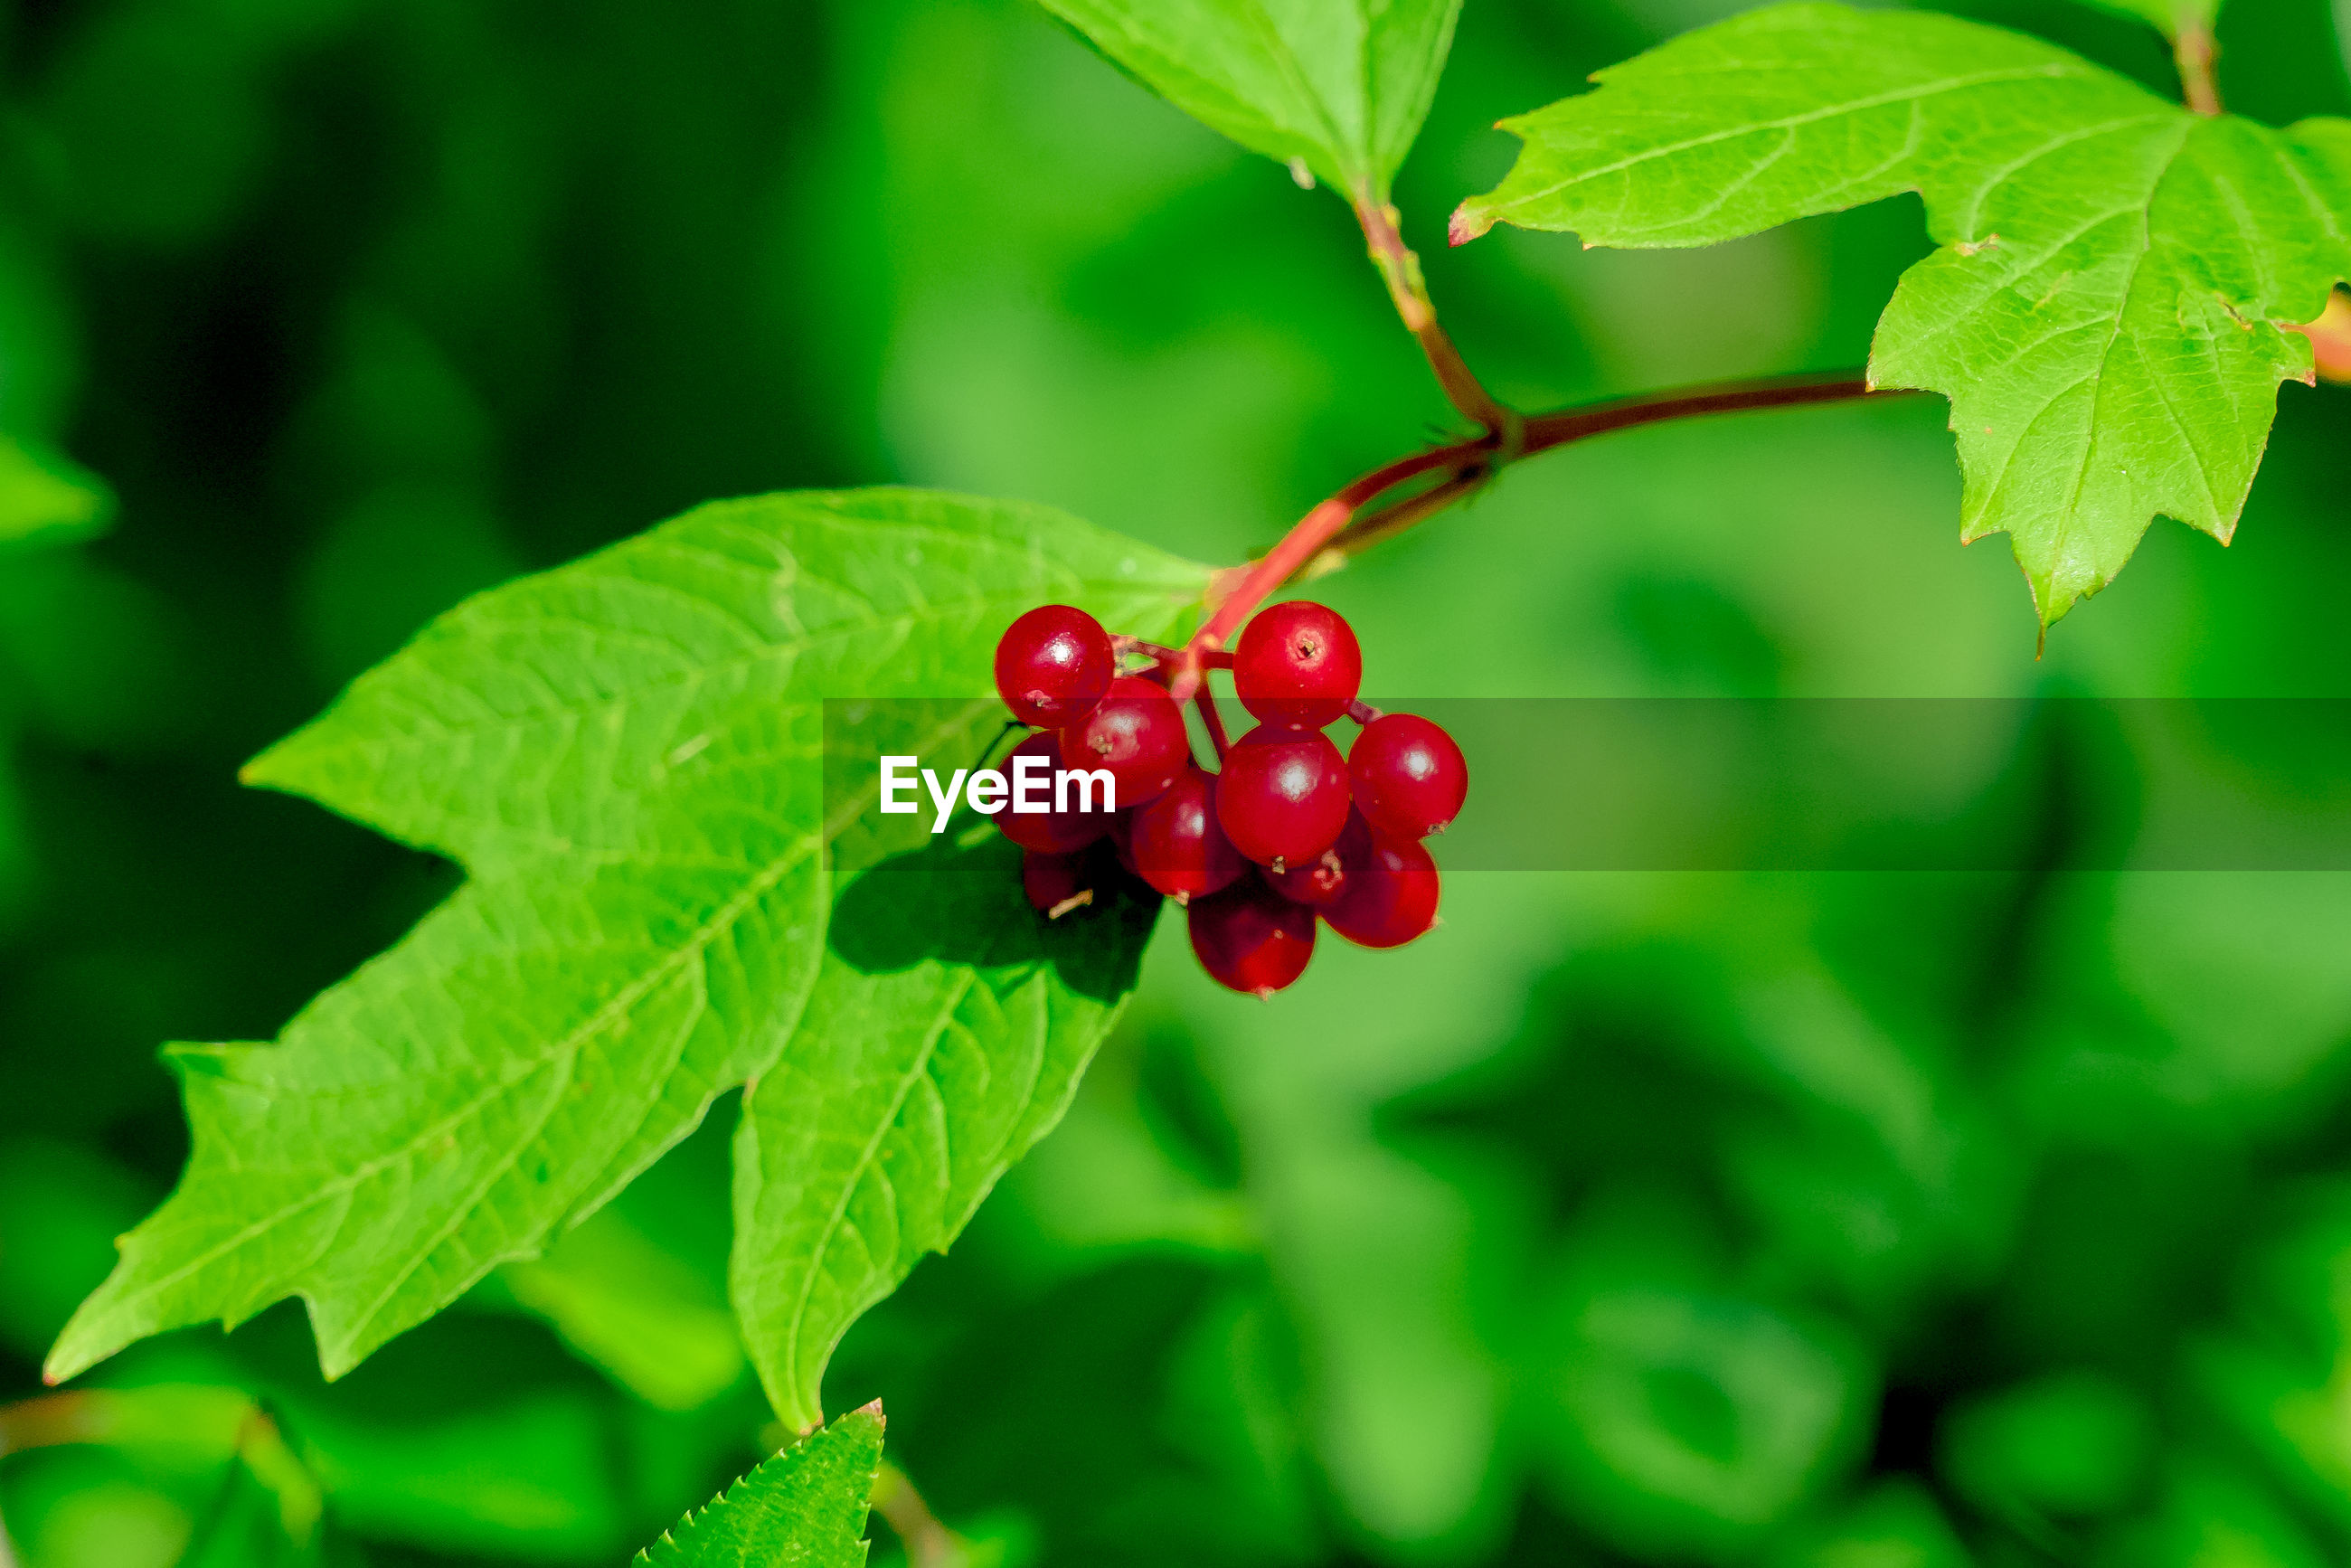 red, leaf, green color, food and drink, growth, fruit, focus on foreground, nature, close-up, no people, food, outdoors, day, freshness, plant, tree, healthy eating, beauty in nature, water